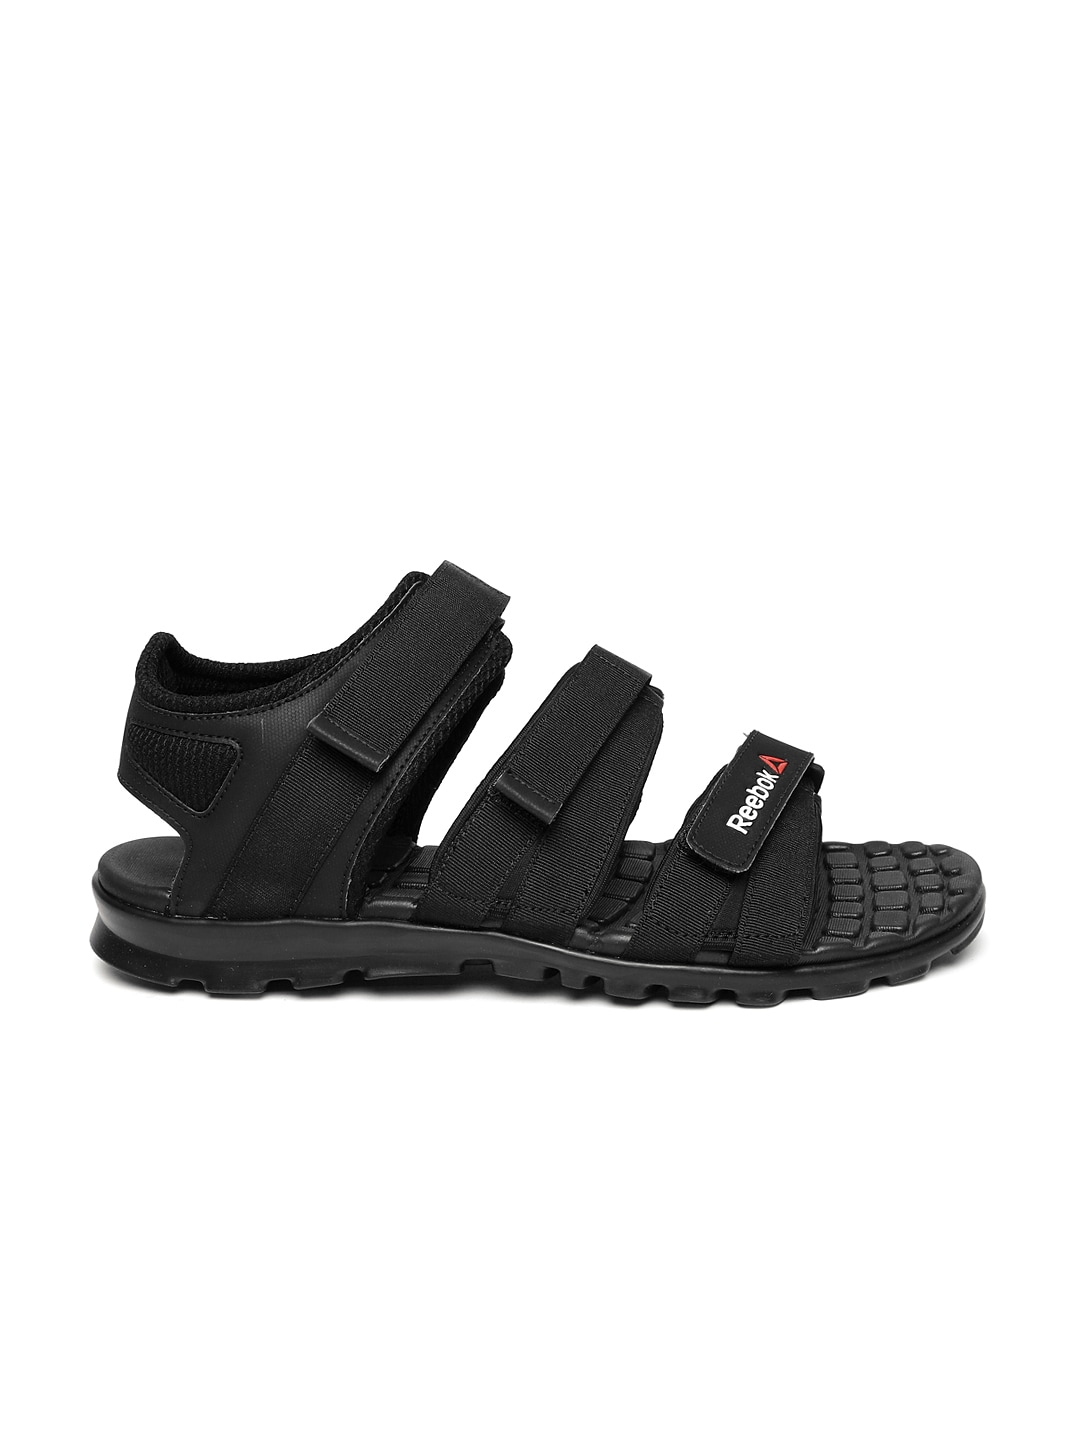 b461cd715730 reebok sandals for men cheap   OFF52% The Largest Catalog Discounts